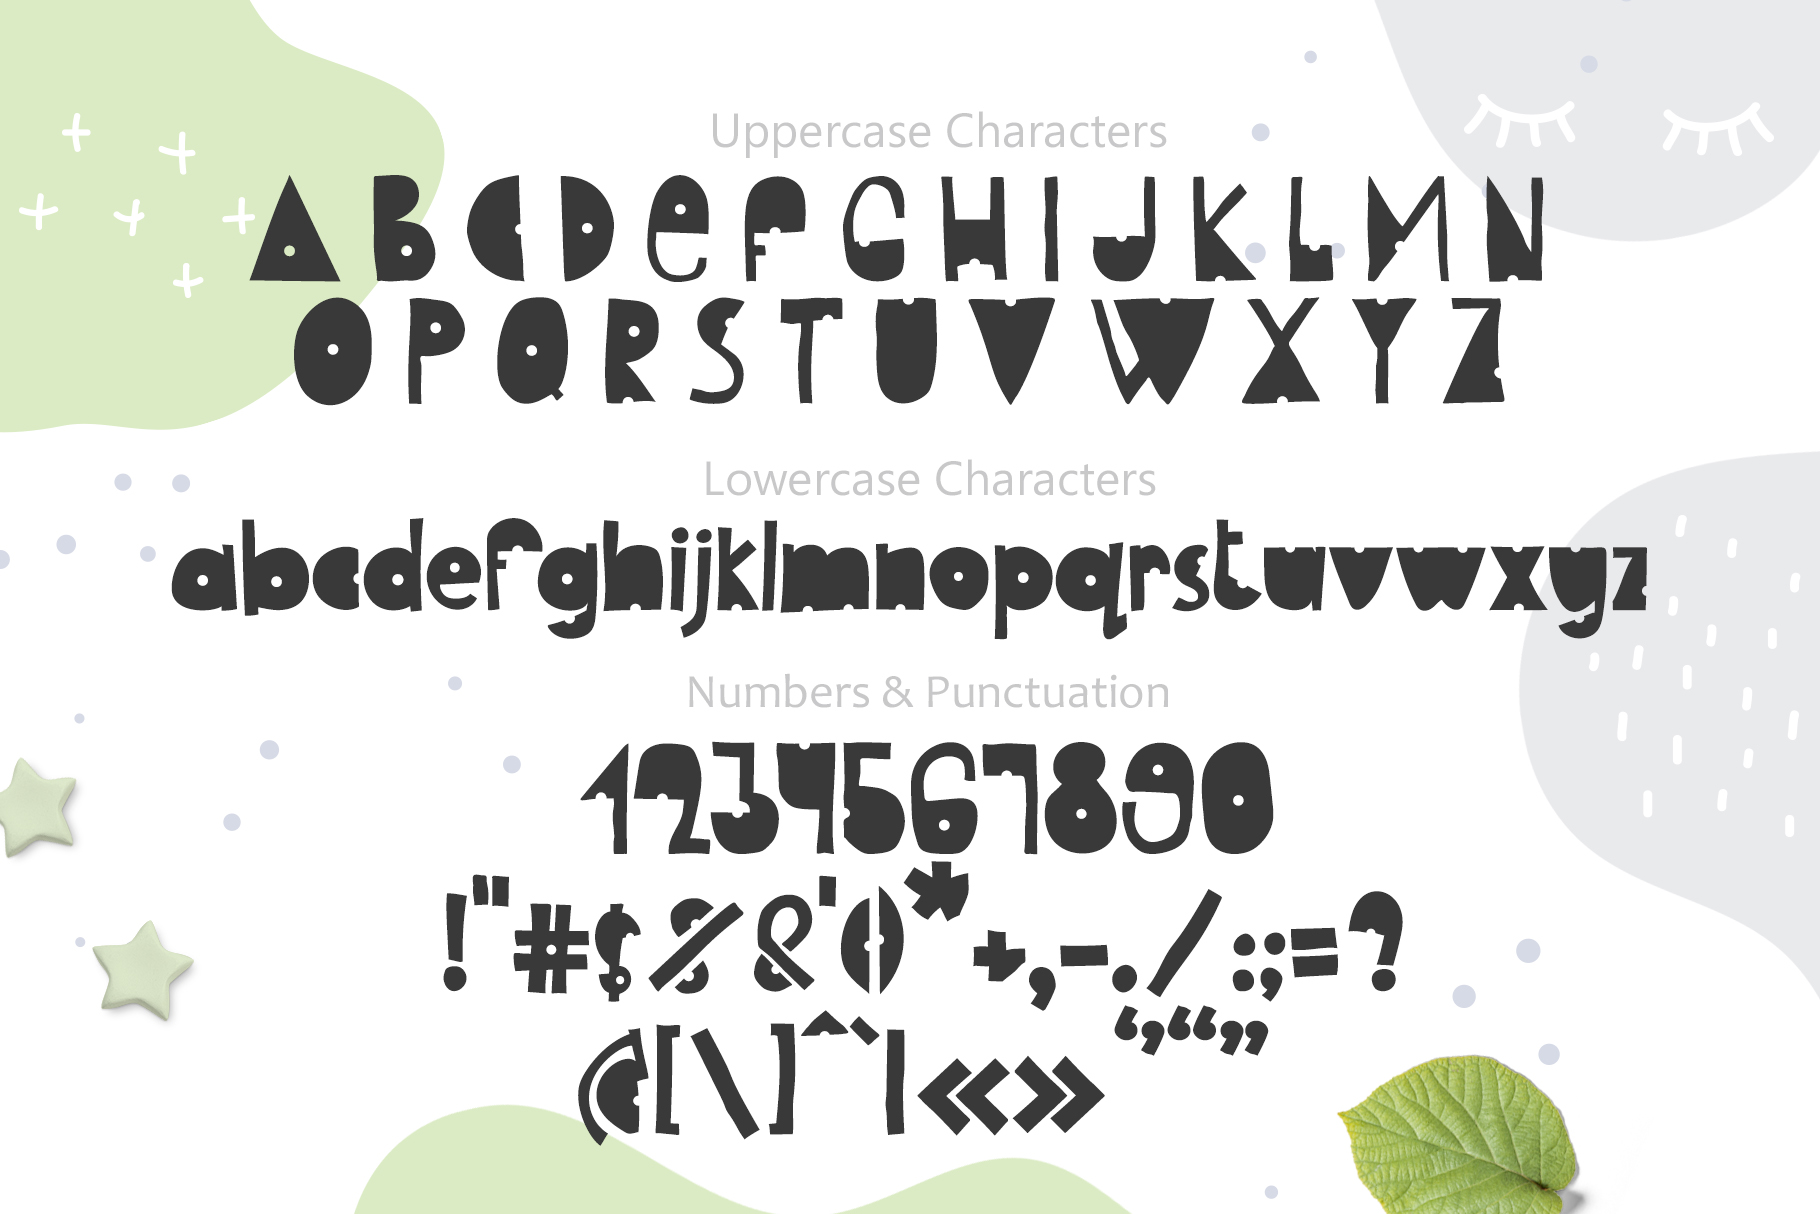 Top 15 Weird Fonts for Appealing Projects 2021 - title03 2